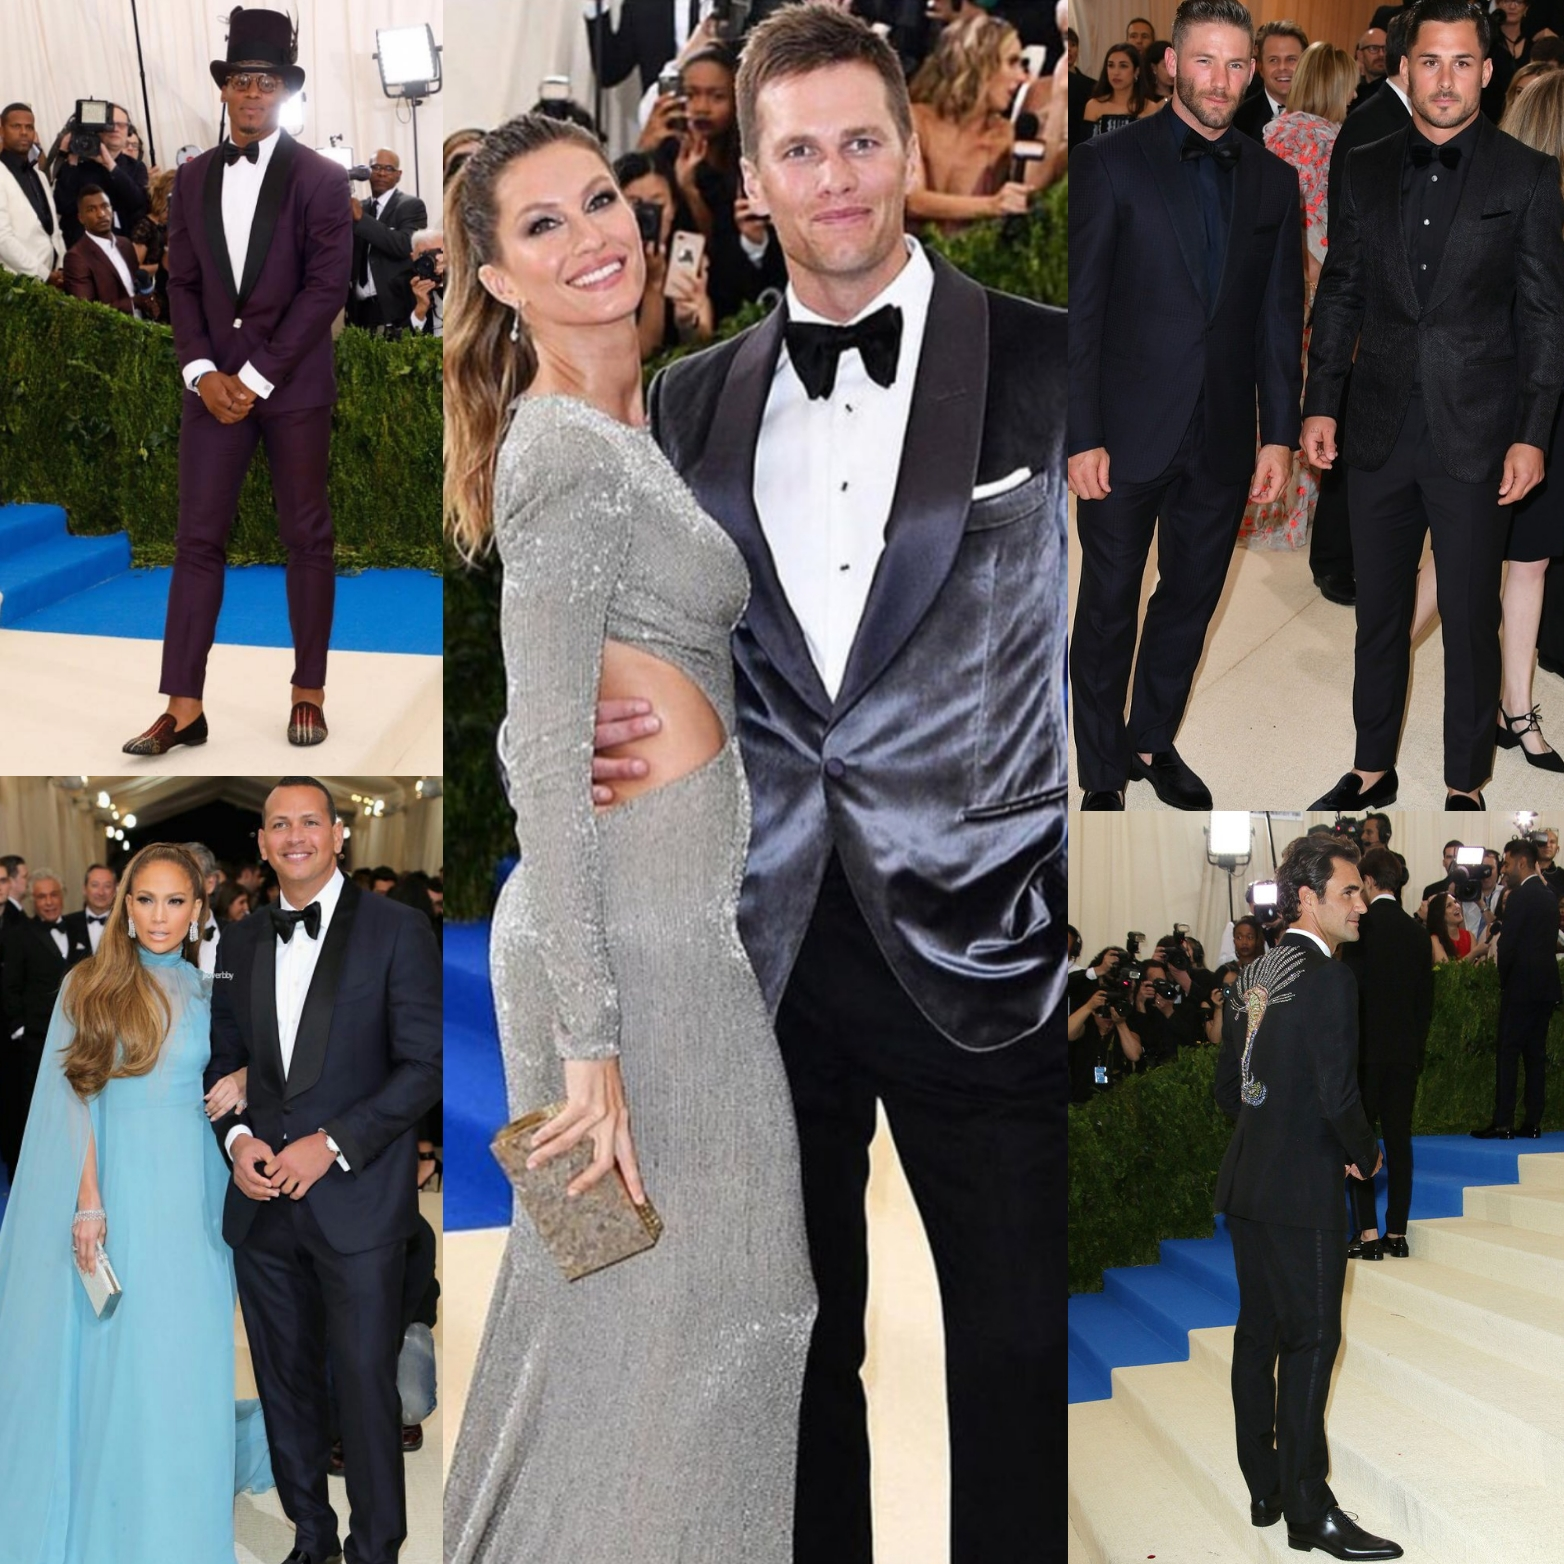 Met Gala 2017: Best-Dressed Athletes